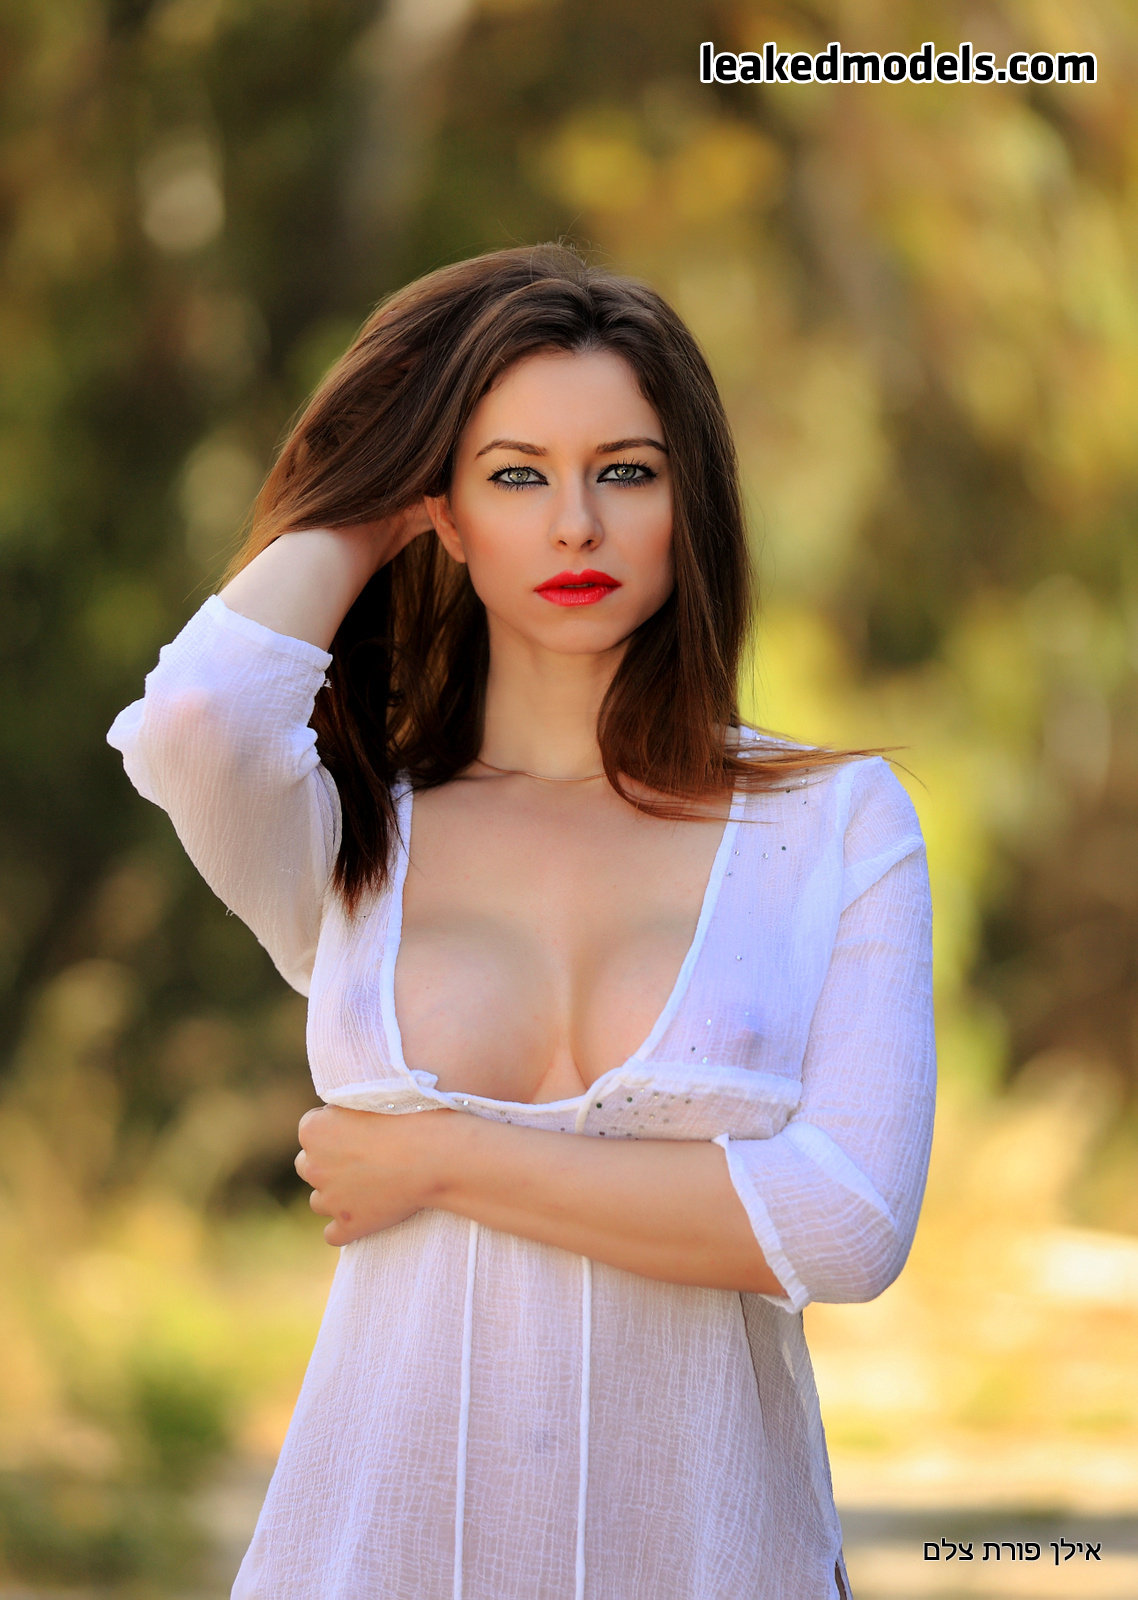 Kristina Rdovnovich Other Leaked Models Nude Leaks (40 Photos)